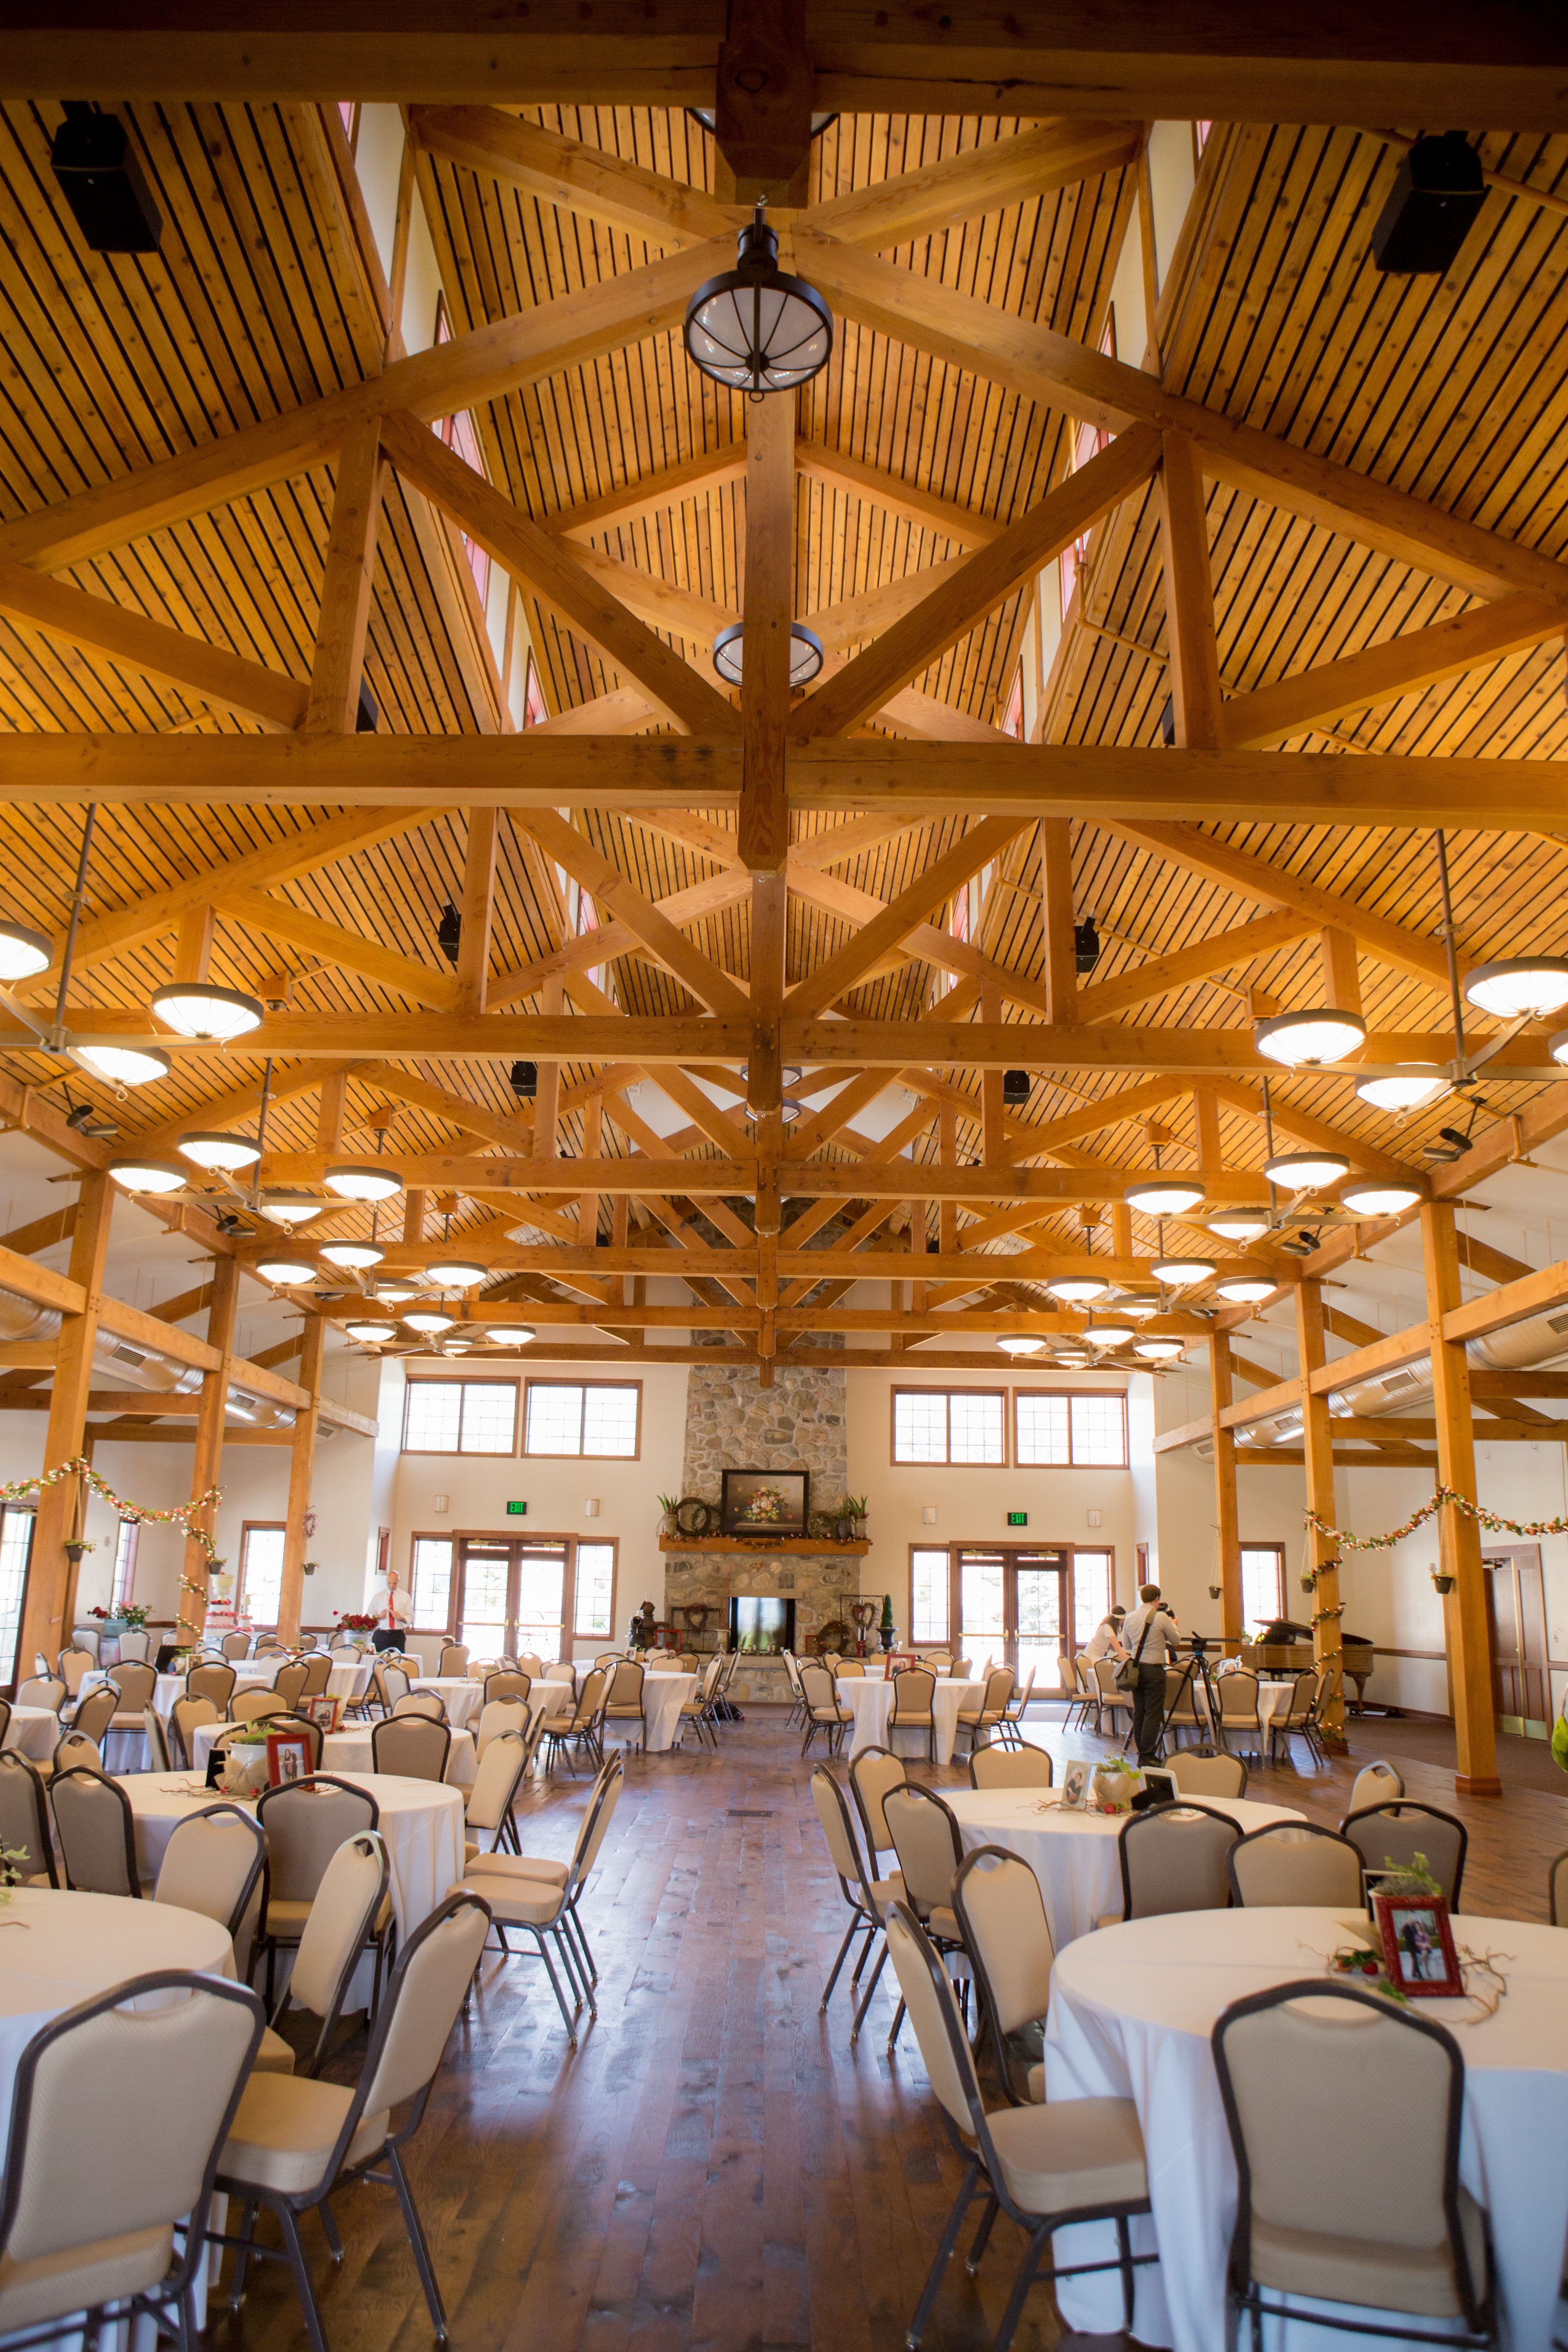 The Venue This Is The Place Heritage Park The Garden Place Mediterranean Wedding Ceiling Lights Venues